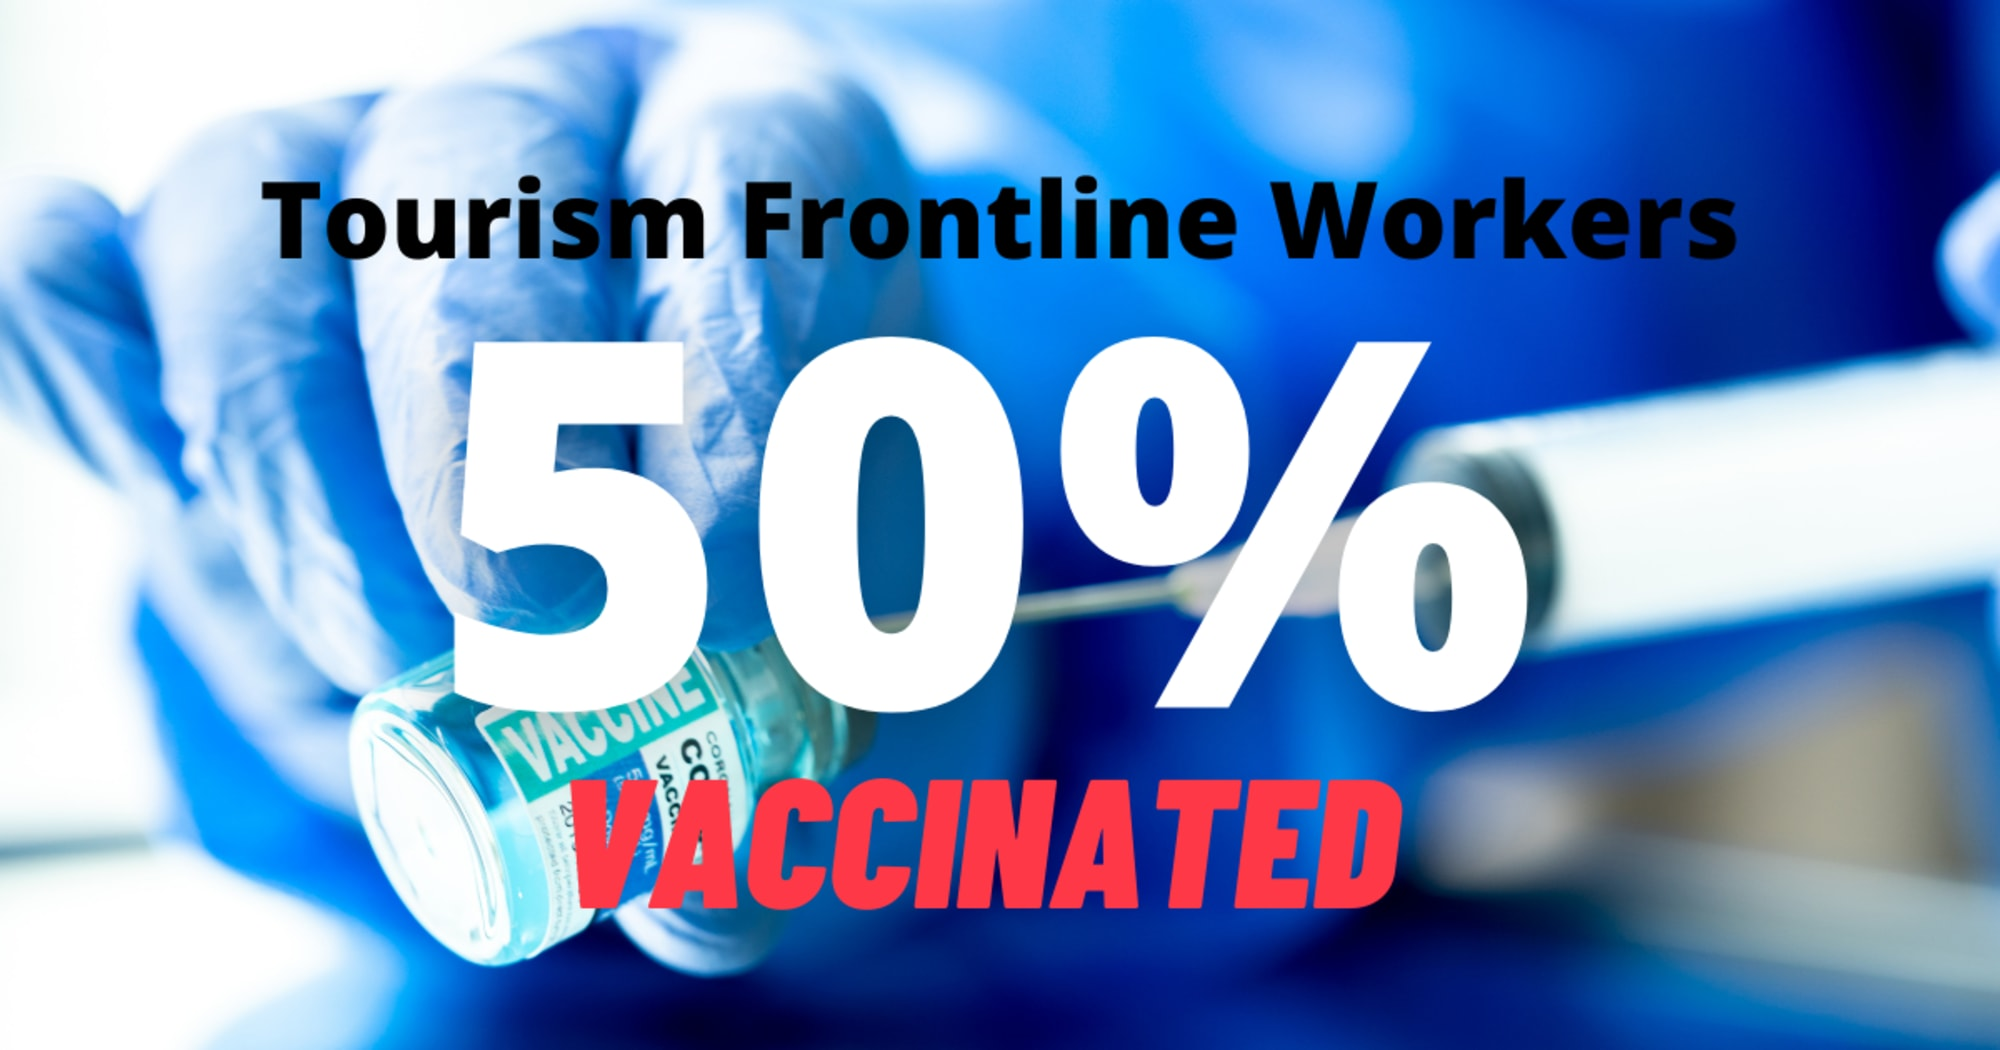 More than 50% of the tourism workers in the country have been vaccinated against COVID-19